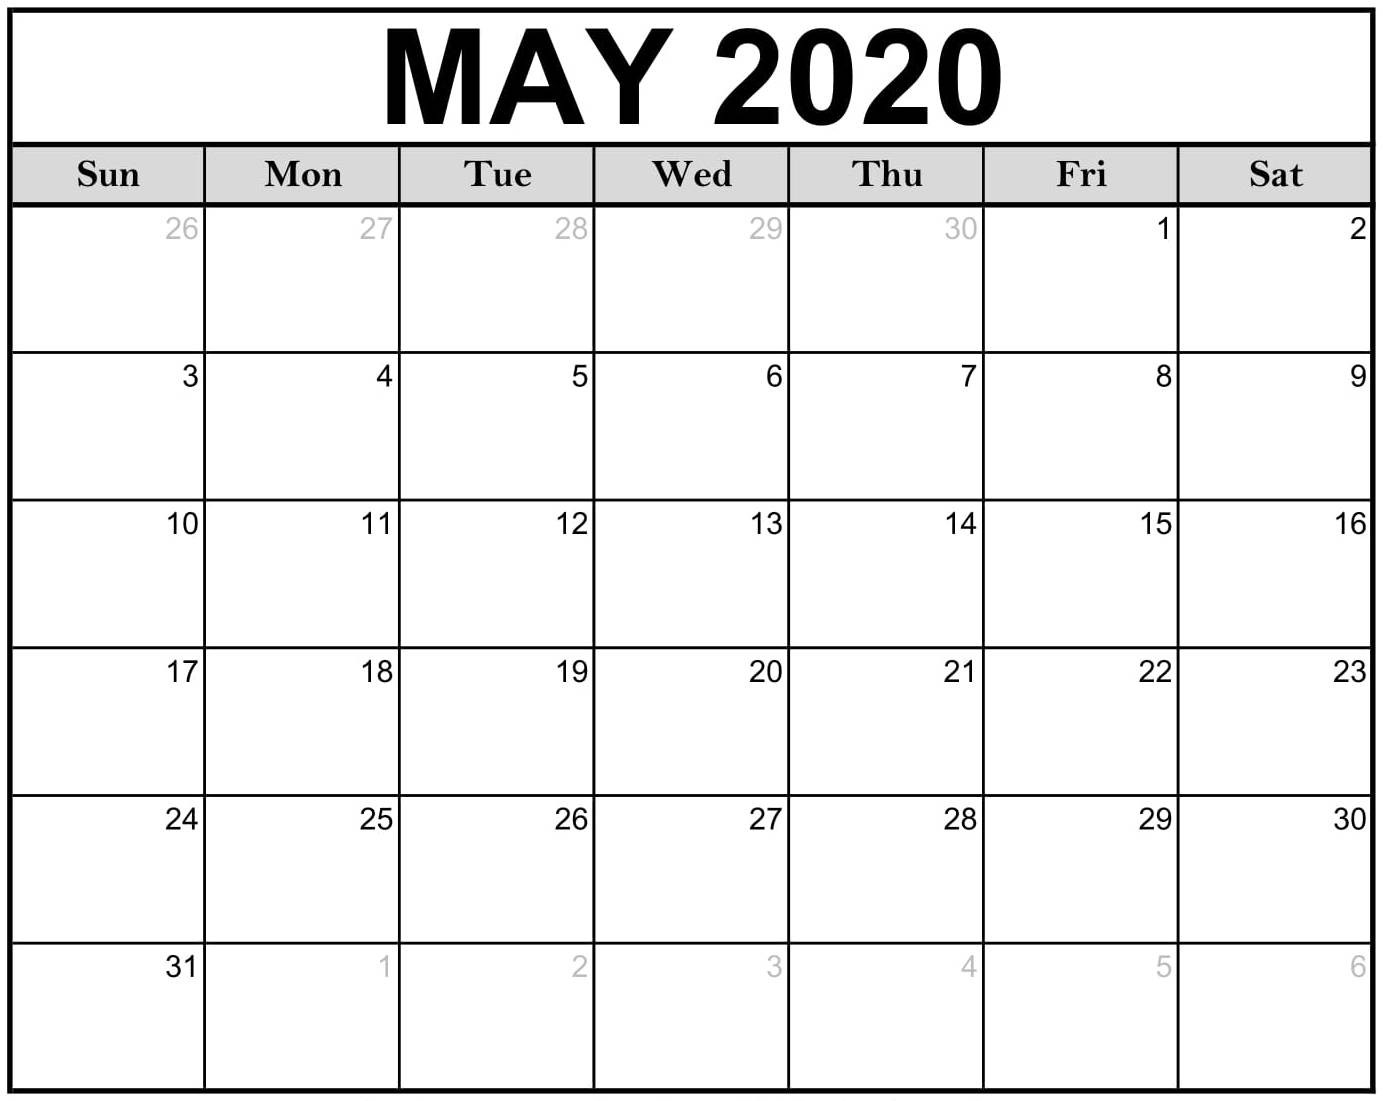 May 2020 Calendar Nz (New Zealand) With Holidays Template-Nz School Holidays 2020